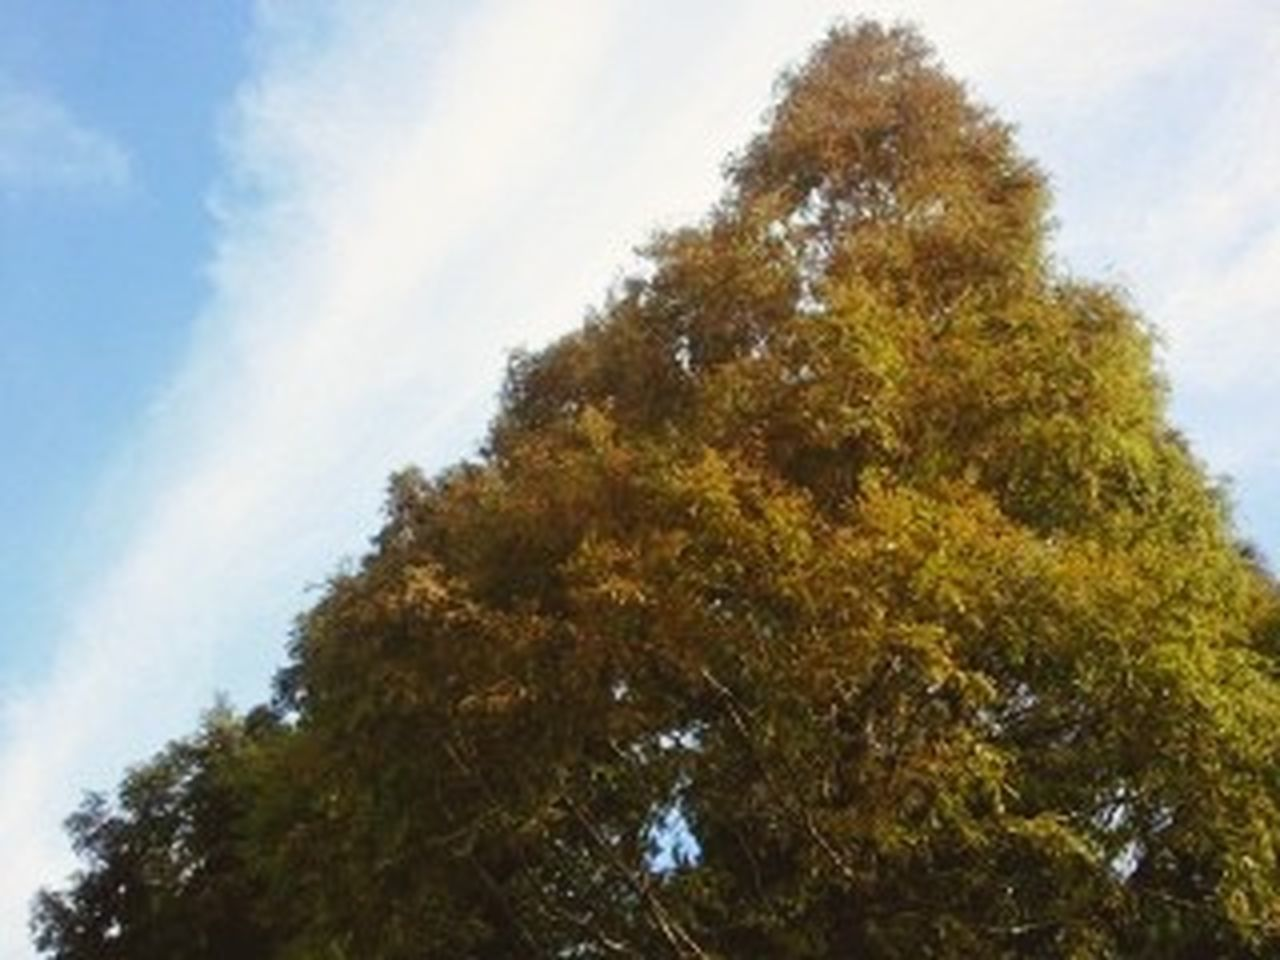 tree, nature, low angle view, sky, no people, day, growth, outdoors, forest, scenics, leaf, beauty in nature, freshness, close-up